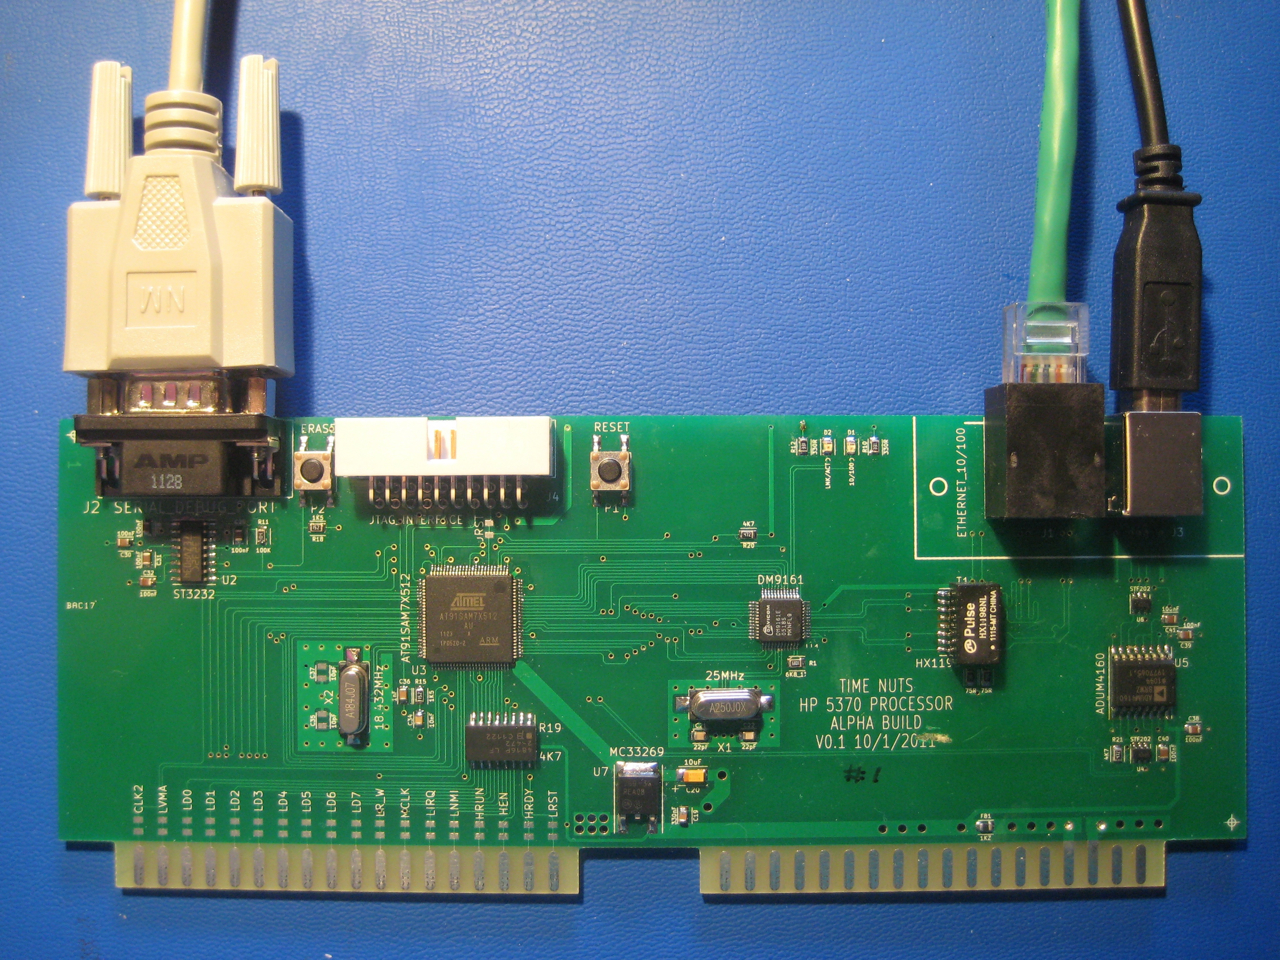 Hp5370 Processor Replacement Project How To Create A Printed Circuit Board Pcbsection 1 New Card Installed Note Absence Of Old Rom And Hpib Cards The Rectangular Section Pcb Holding Ethernet Usb Connectors Is Designed